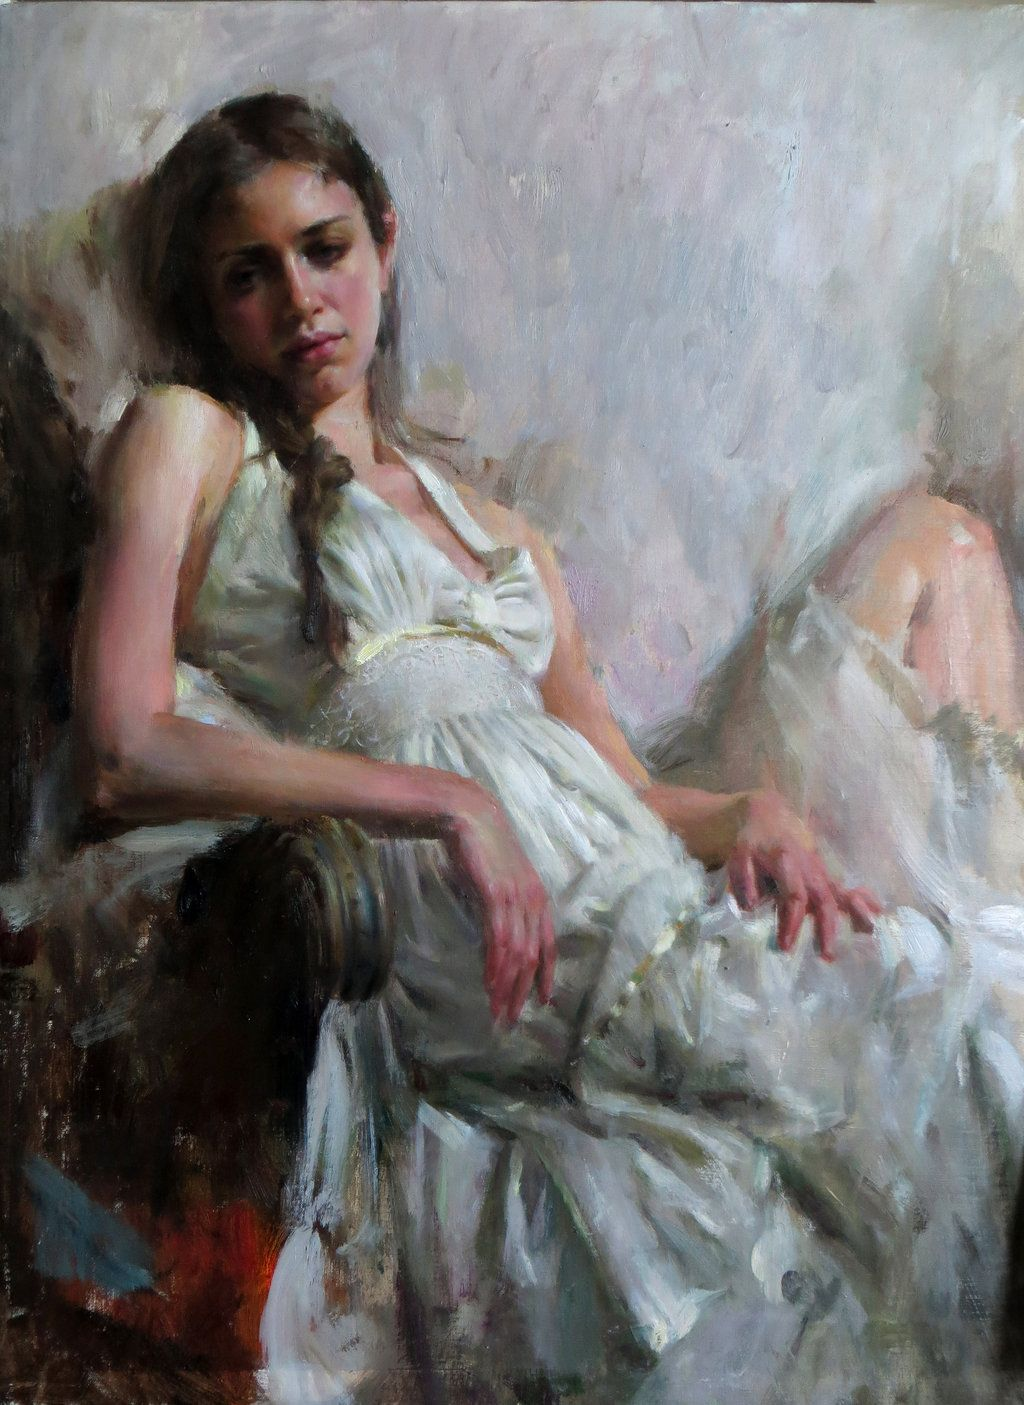 Gaze mary qian contemporary figurative art for In their paintings the impressionists often focused on